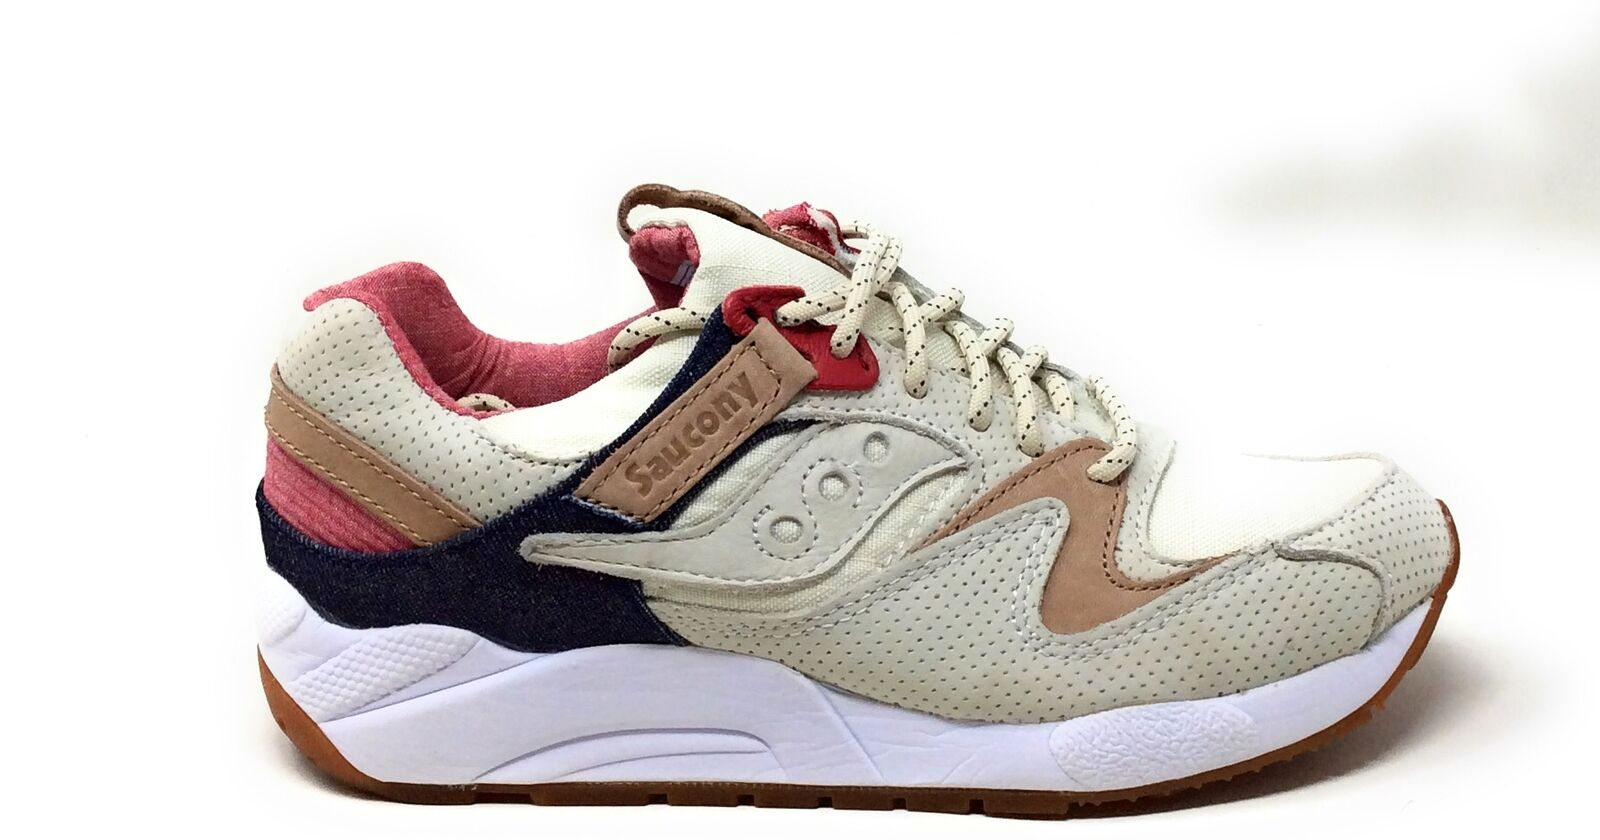 Saucony Mens Grid 9000 Running Sneaker shoes Light Tan Size 6 M US